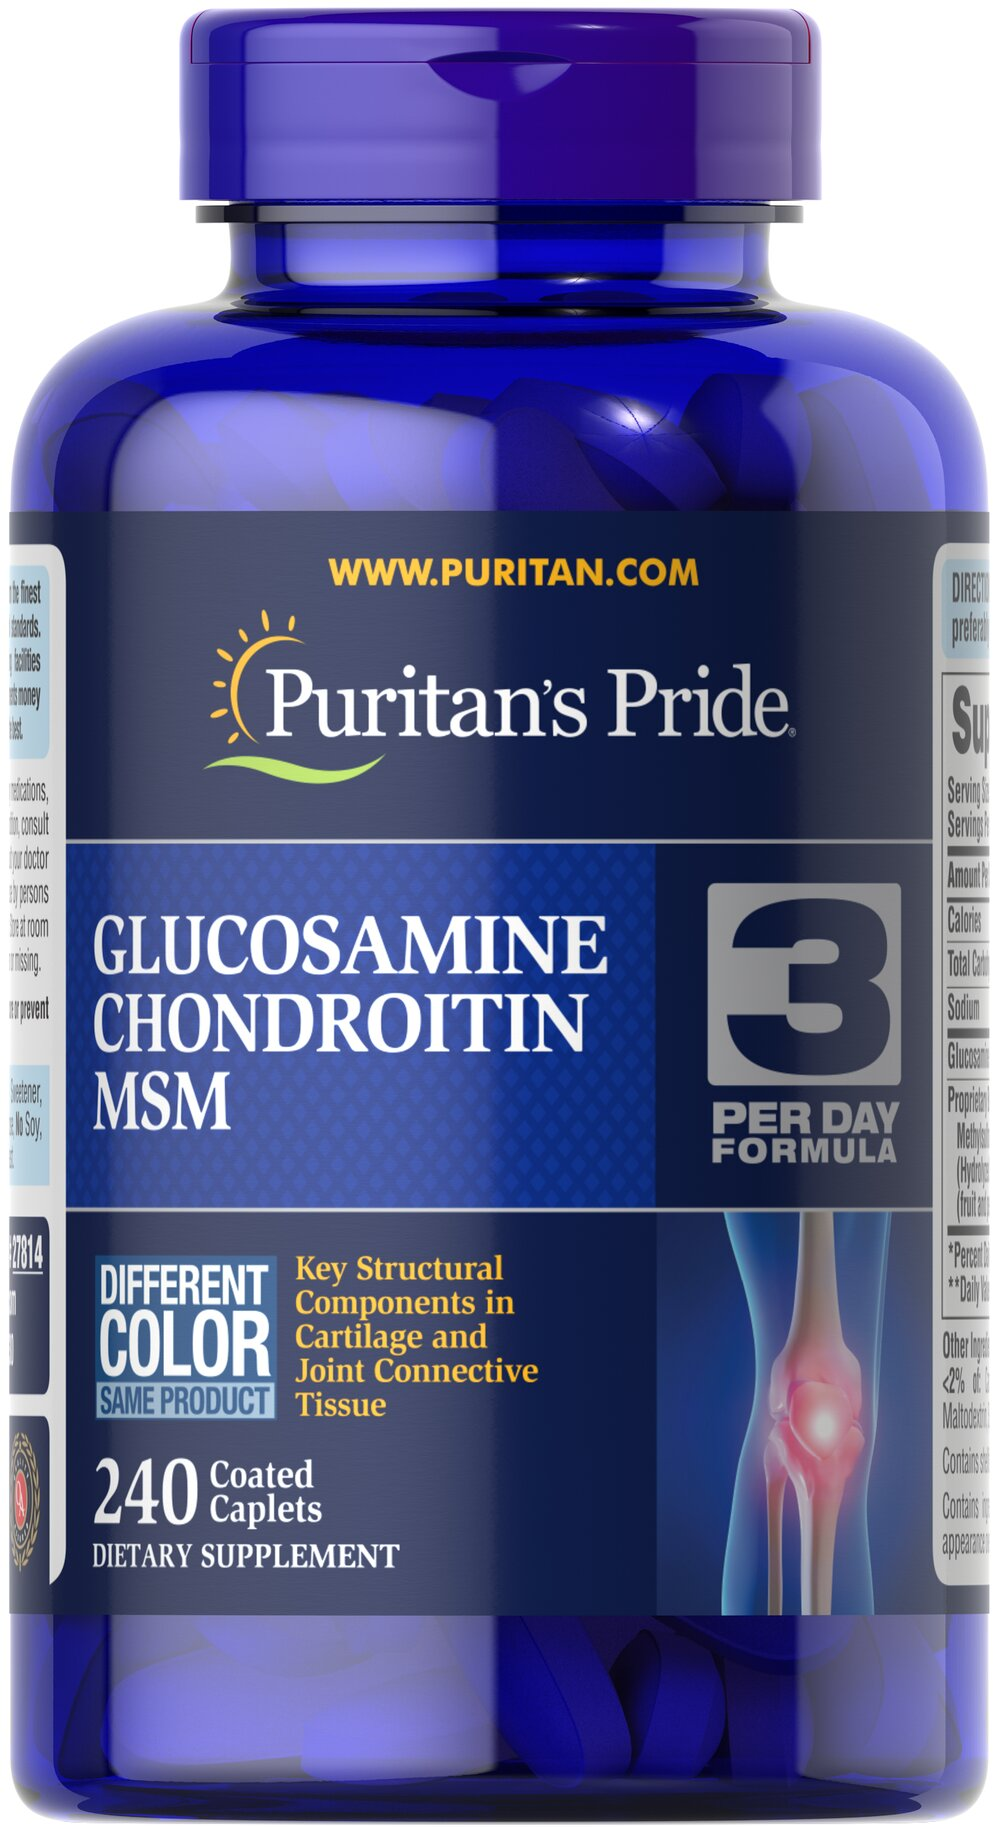 Double Strength Glucosamine, Chondroitin & MSM Joint Soother® <p>Combines the top three structural components found in popular joint support products — Glucosamine, Chondroitin and MSM — with amino and herbal support from Collagen and Boswellia Serrata**</p><p>This high-quality formula delivers 1,500 mg of Glucosamine HCl  to help support cartilage, lubricate the joints, and helps with occasional joint stress due to exercise or physical activity**</p> 240 Caplets